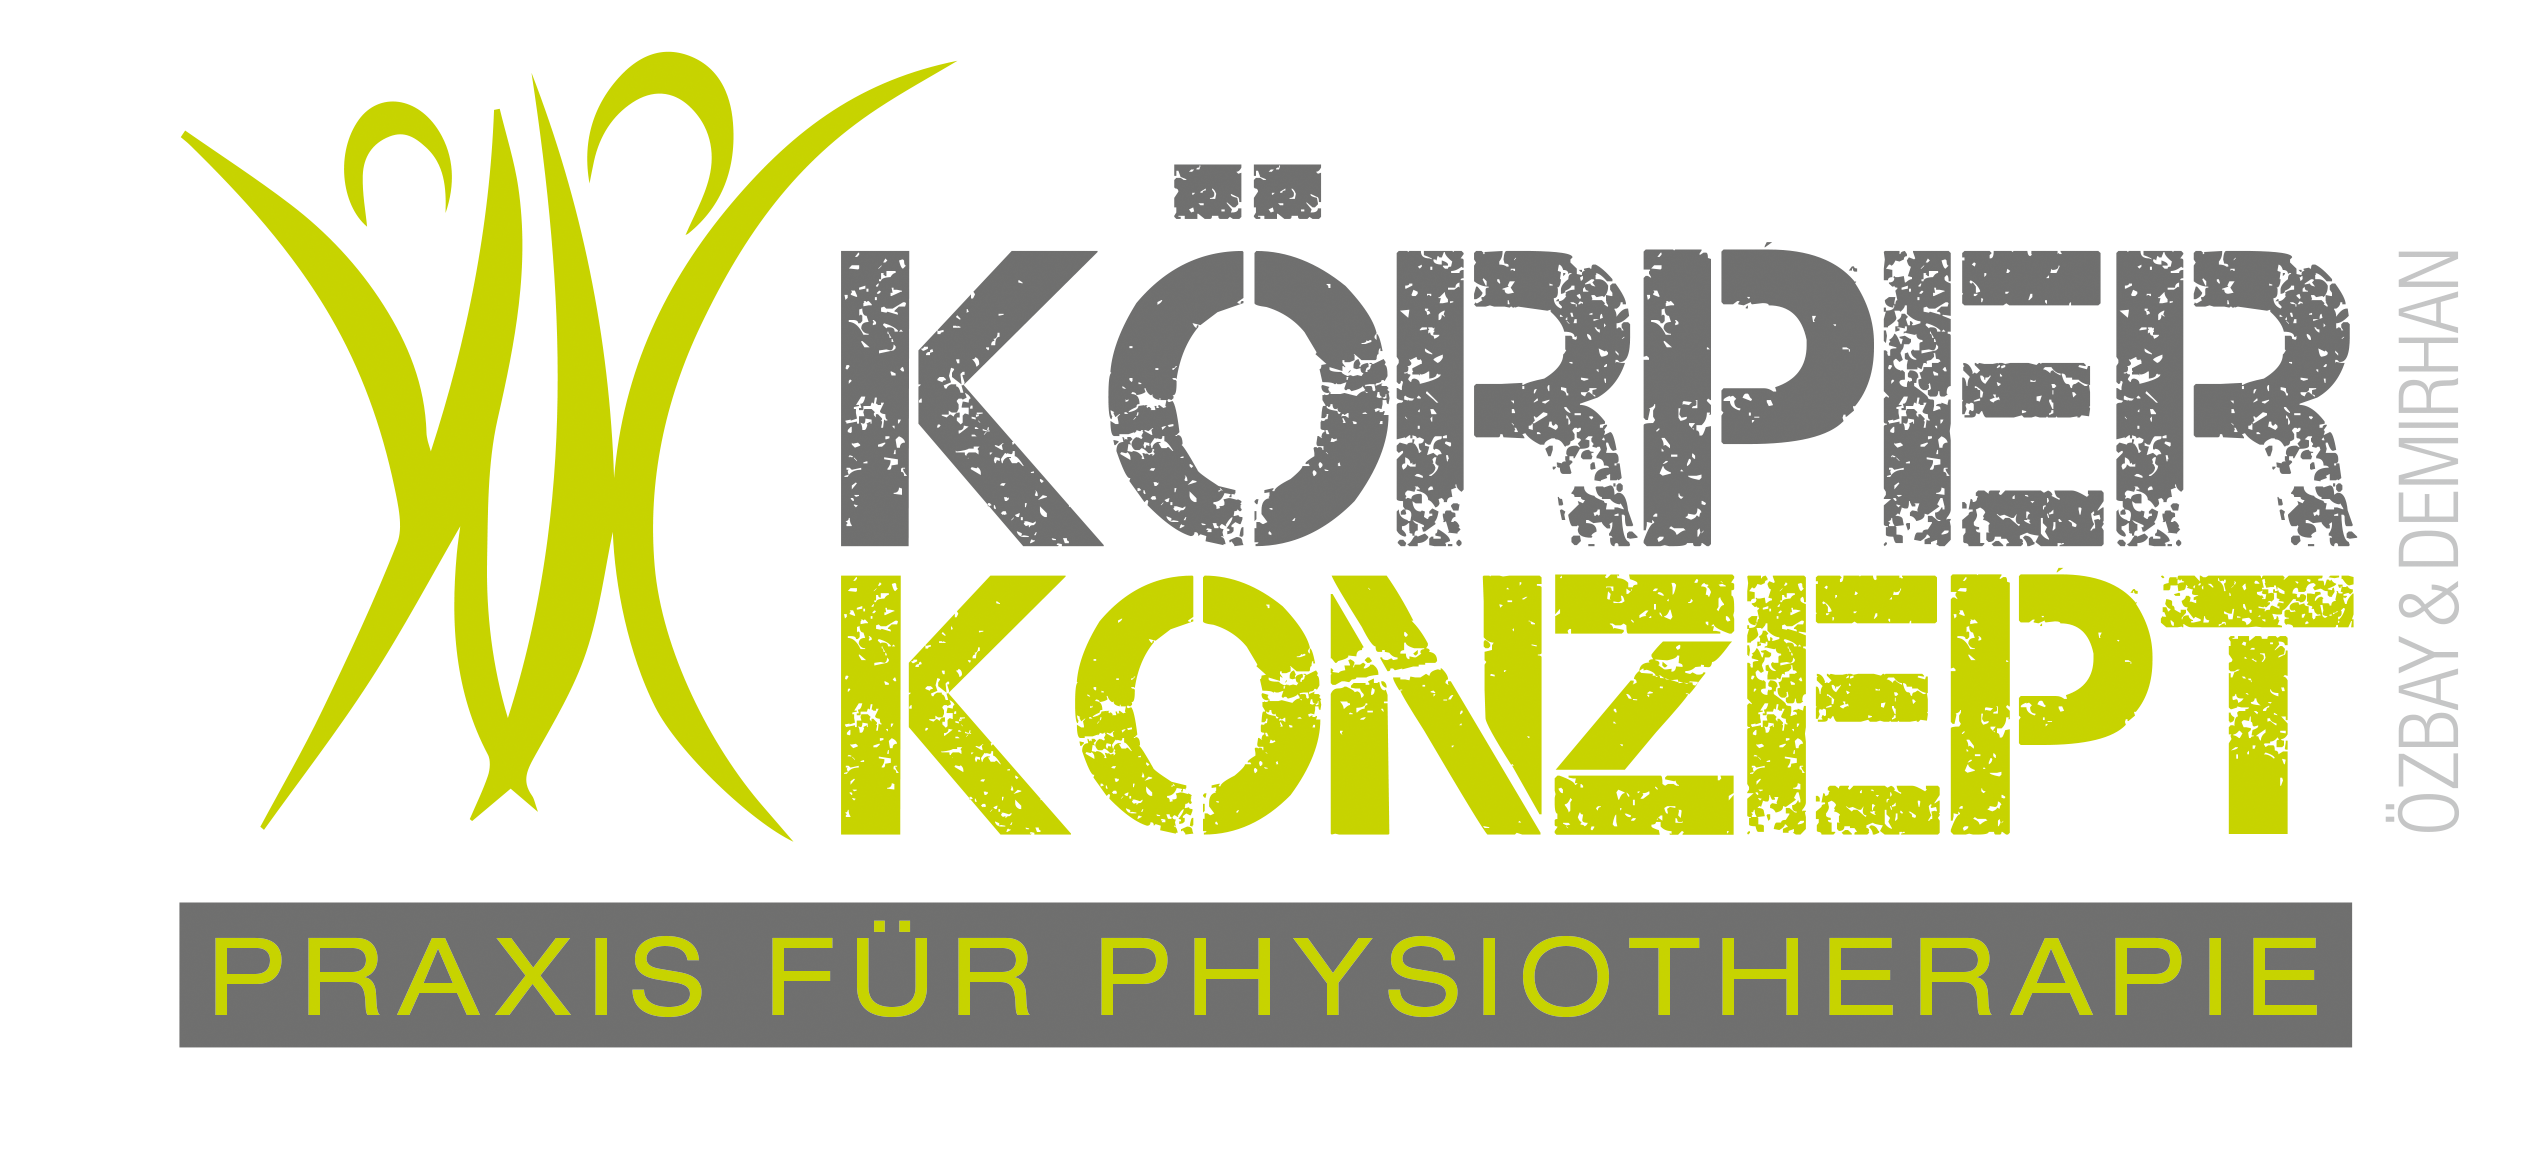 Physiotherapie in Bottrop – Ihre physiktherapeutische Praxis mitten in Bottrop